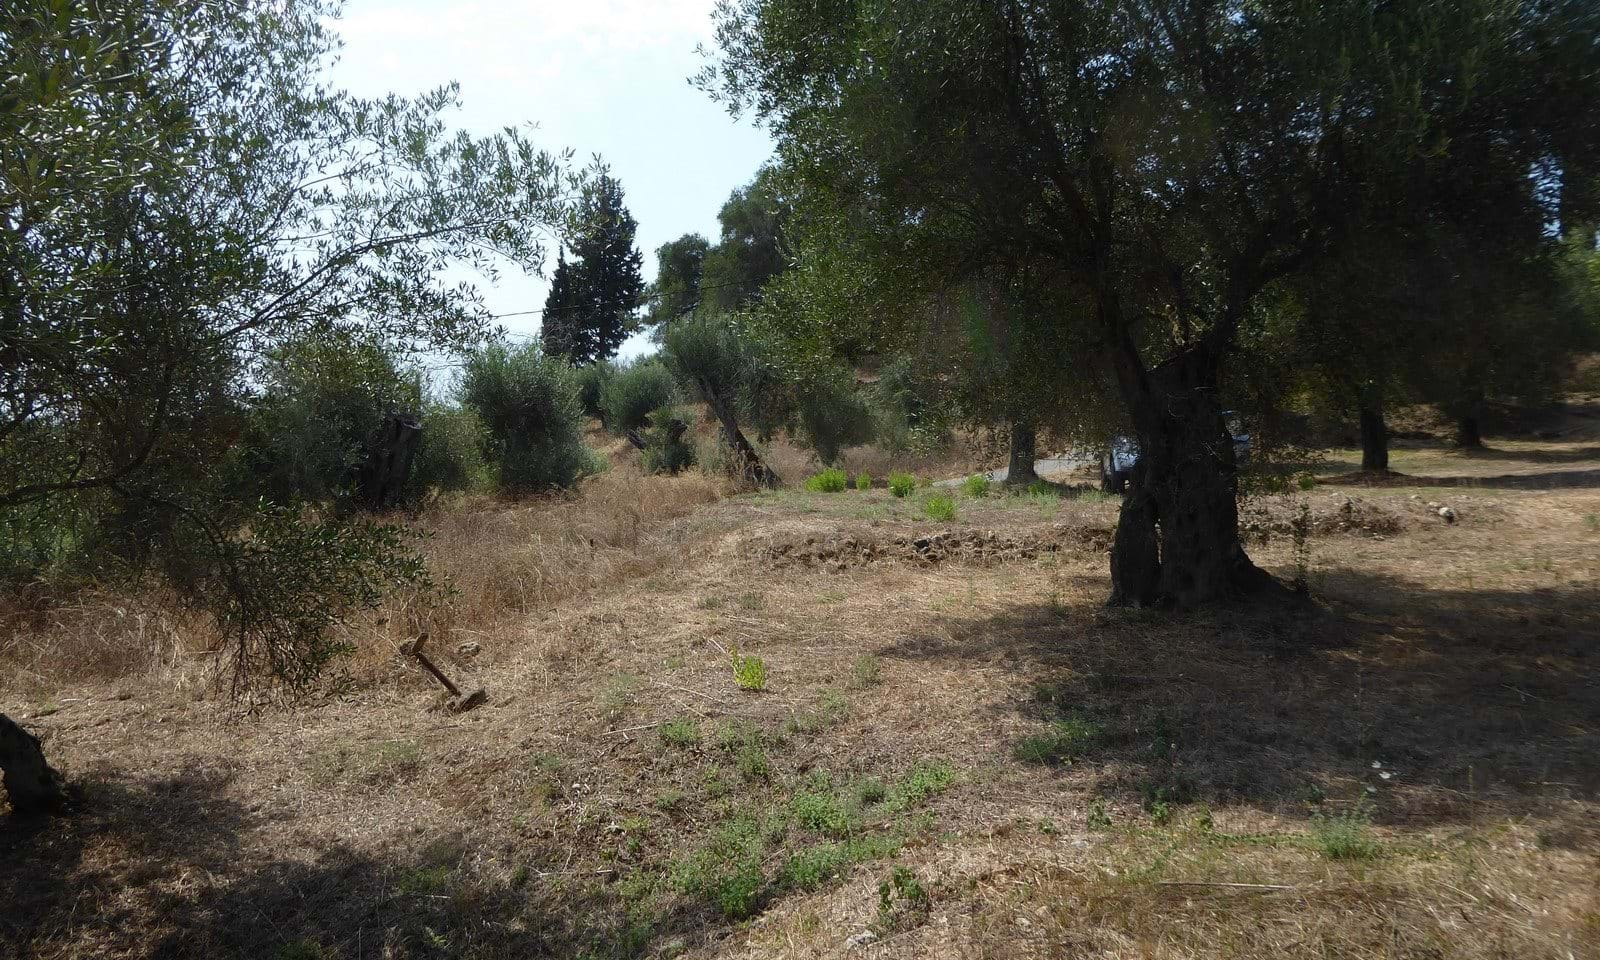 Land for sale near Aqualand Corfu